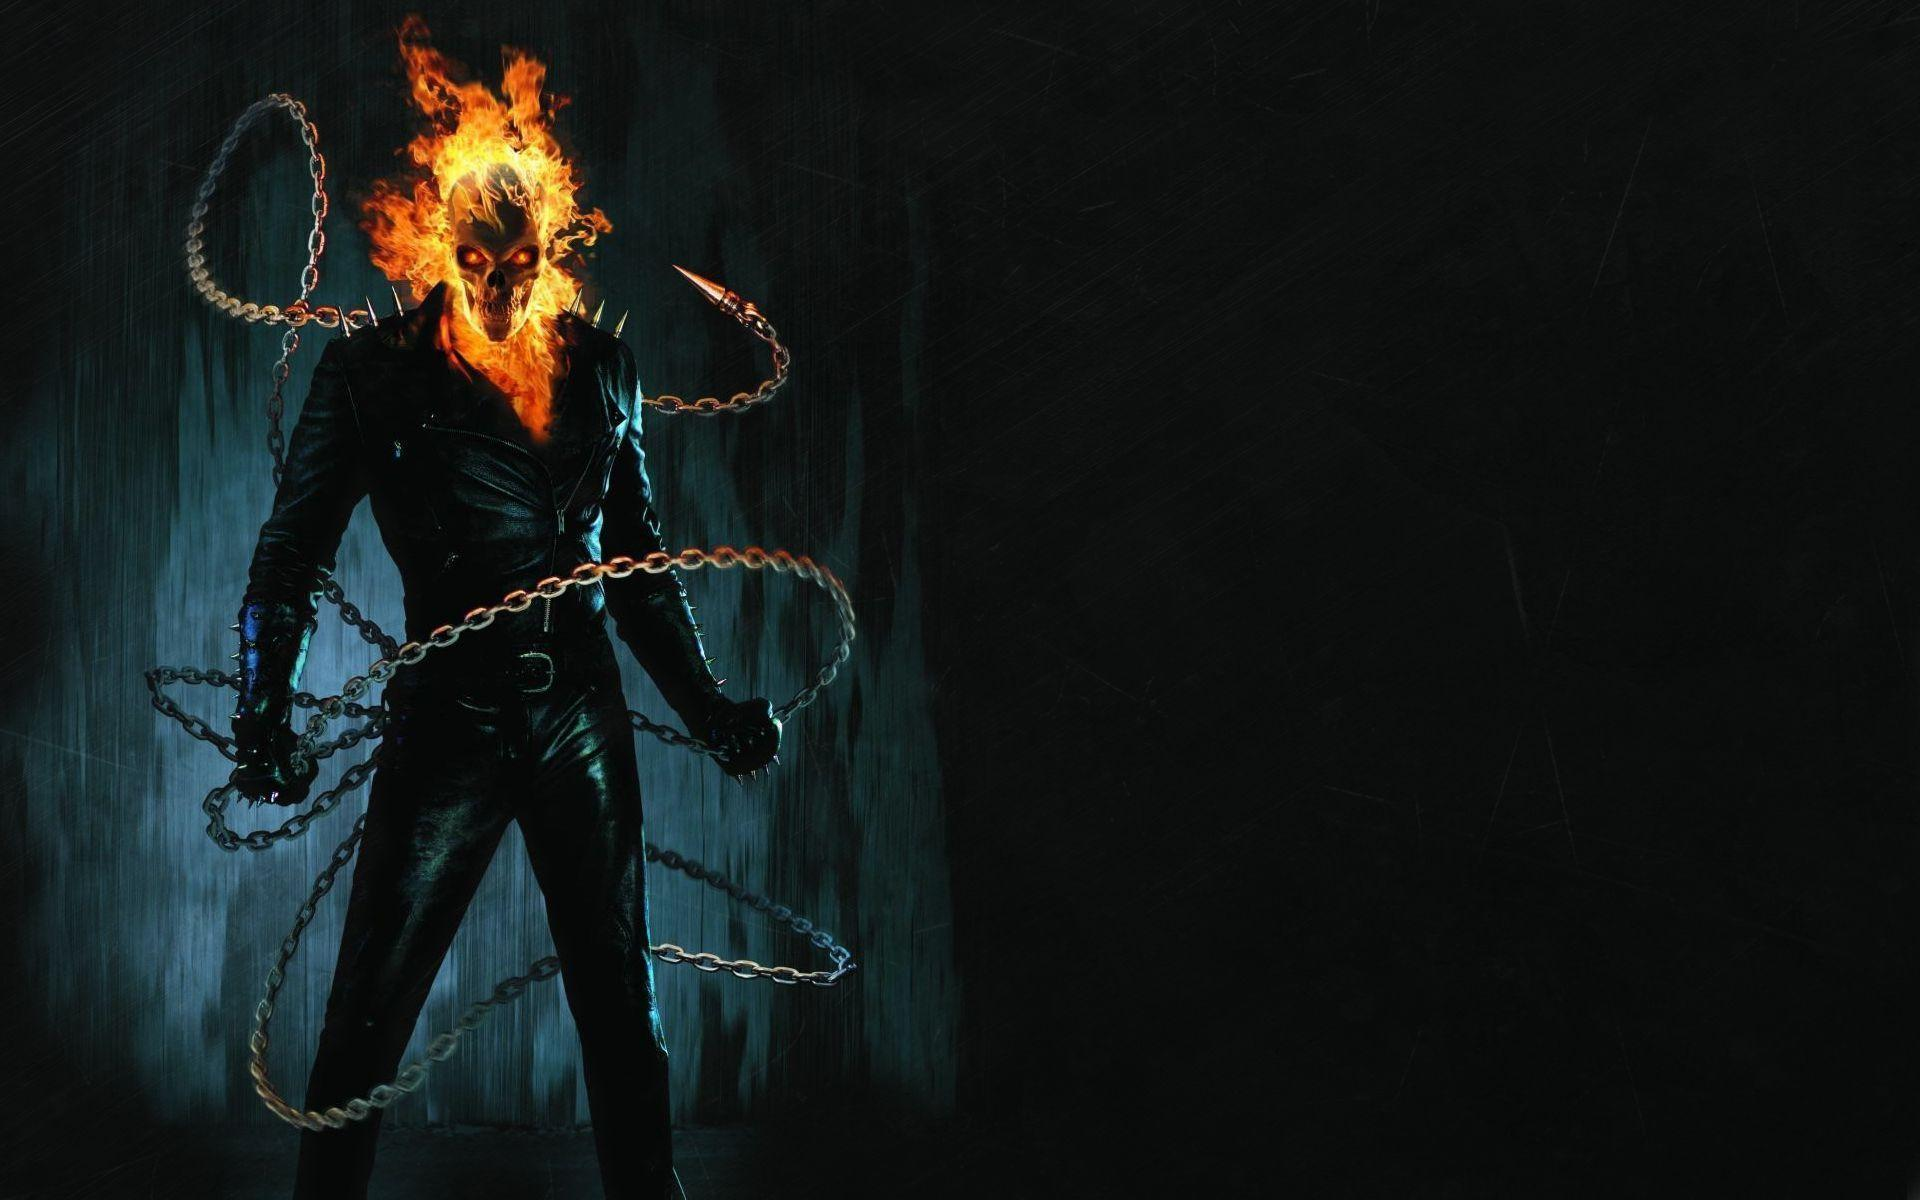 4k Ghost Rider Wallpapers Top Free 4k Ghost Rider